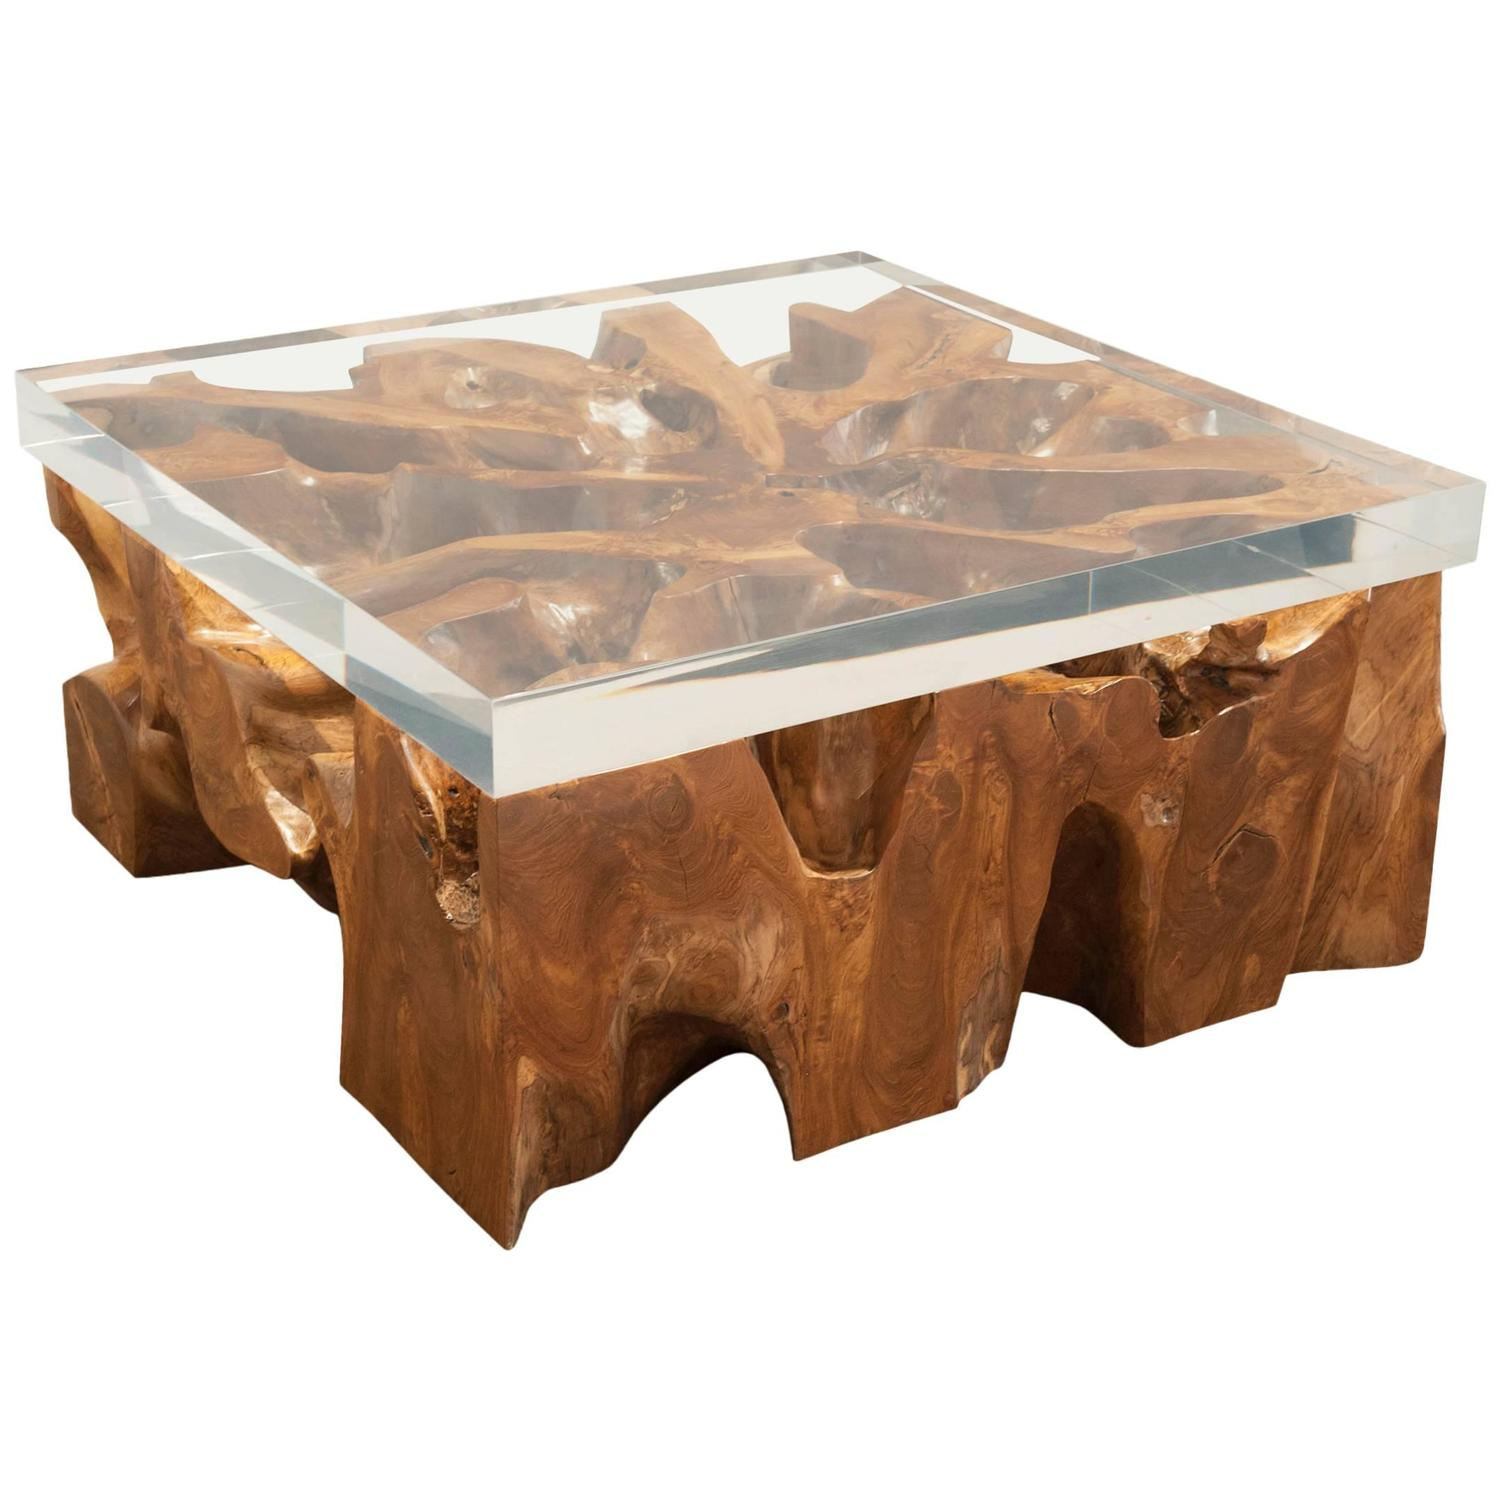 large lucite and wood coffee table at 1stdibs ForLarge Wood Coffee Table